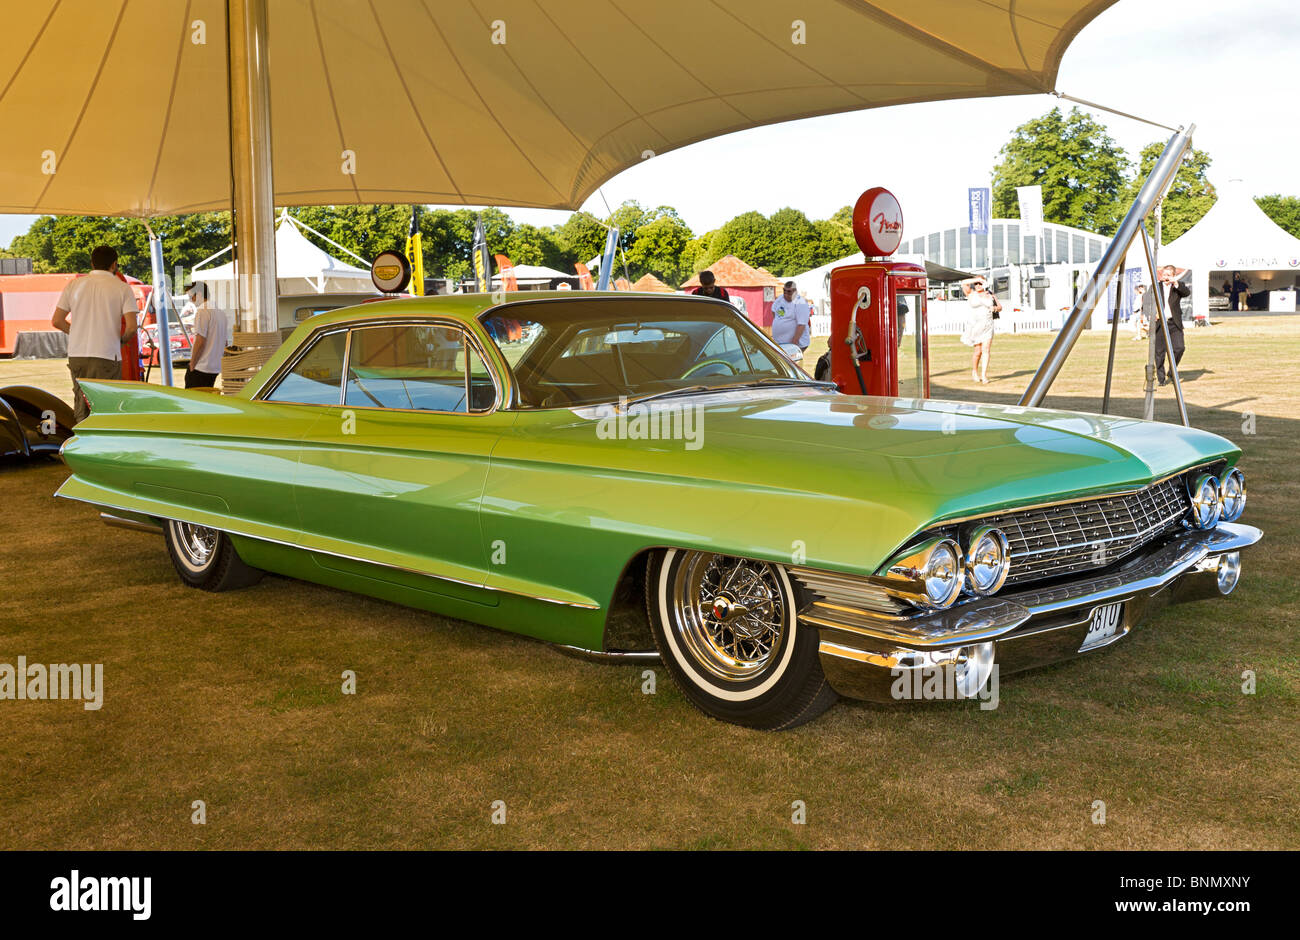 Coupe Deville Stock Photos Images Alamy 1954 Cadillac 1961 Custom Belonging To Jimmie Vaughan At The 2010 Goodwood Festival Of Speed